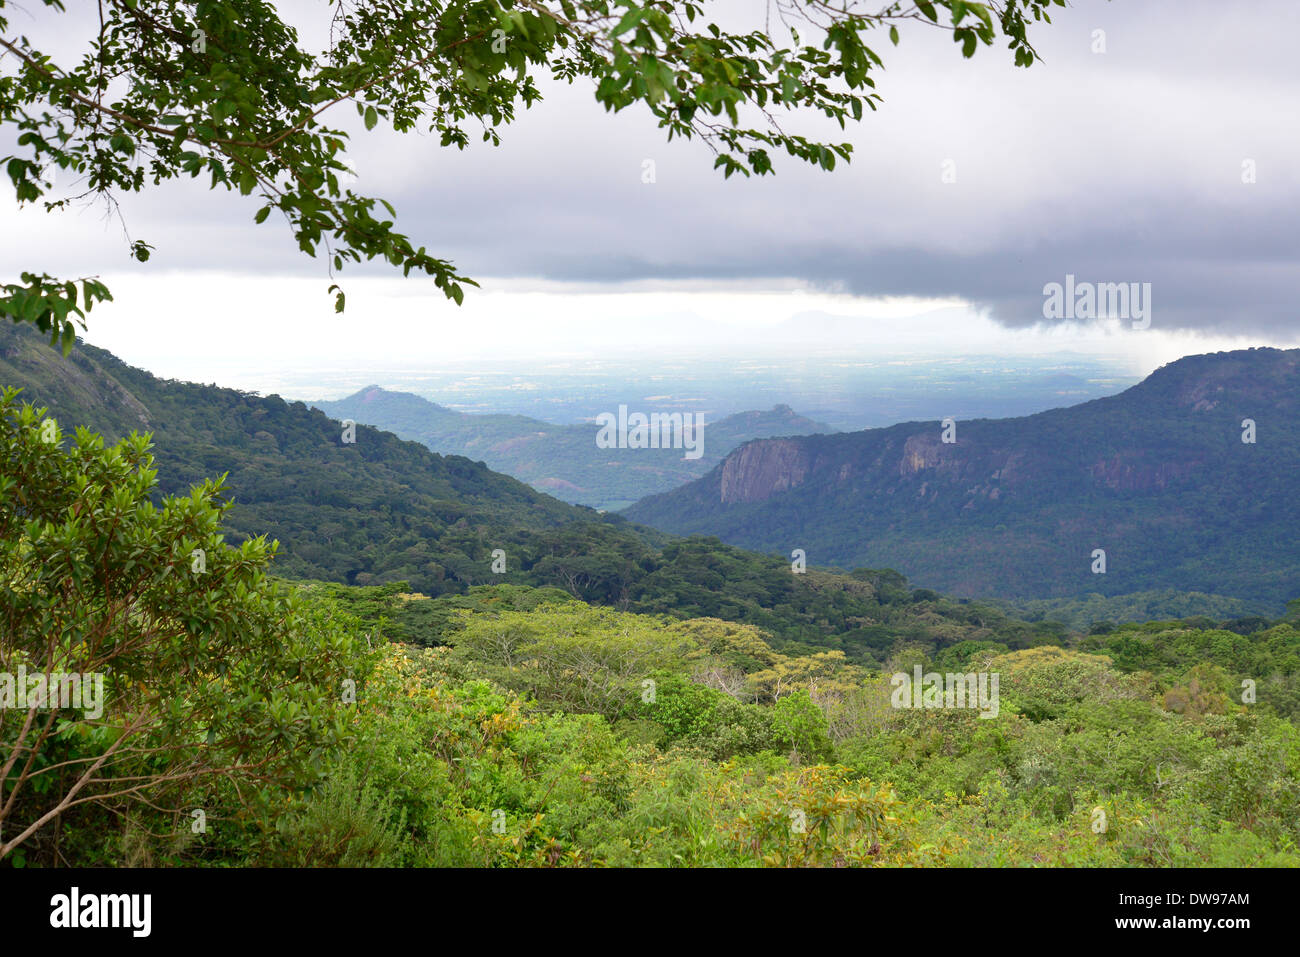 View into Mozambique from Leopard Rock, Zimbabwe in Central Africa. - Stock Image